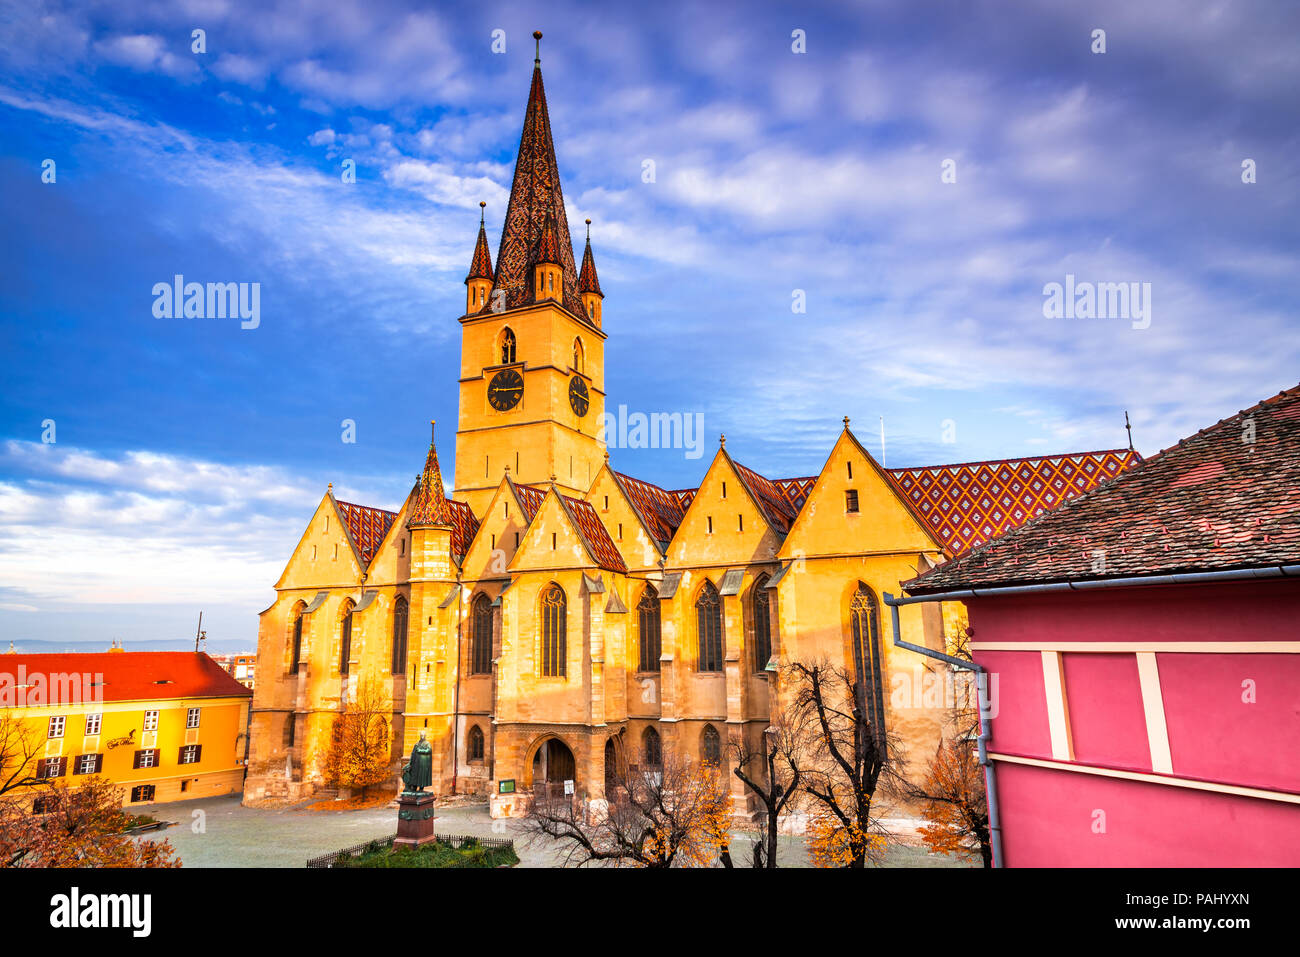 Sibiu, Romania. Evangelical Cathedral in the center of Sibiu, Transylvania, European Capital of Culture for the year 2007. Stock Photo